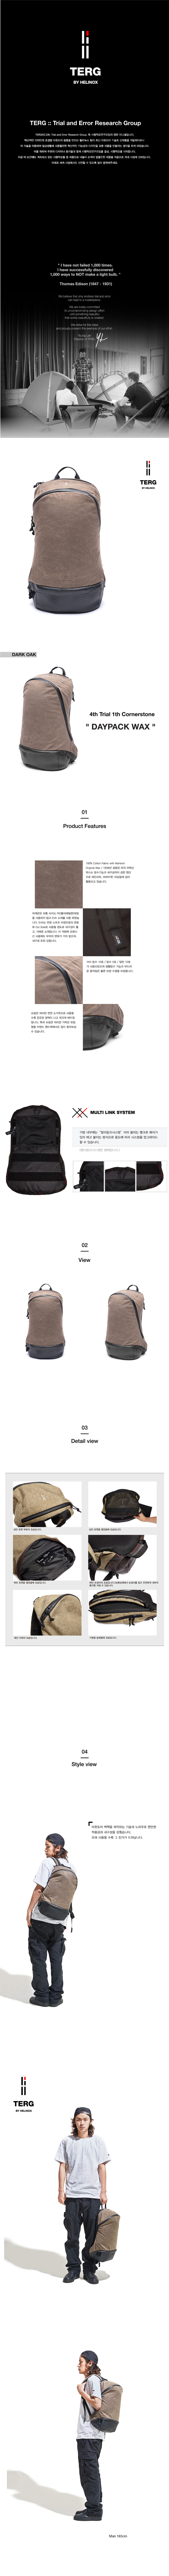 20160404-Daypack-Large-Dark-oak.jpg